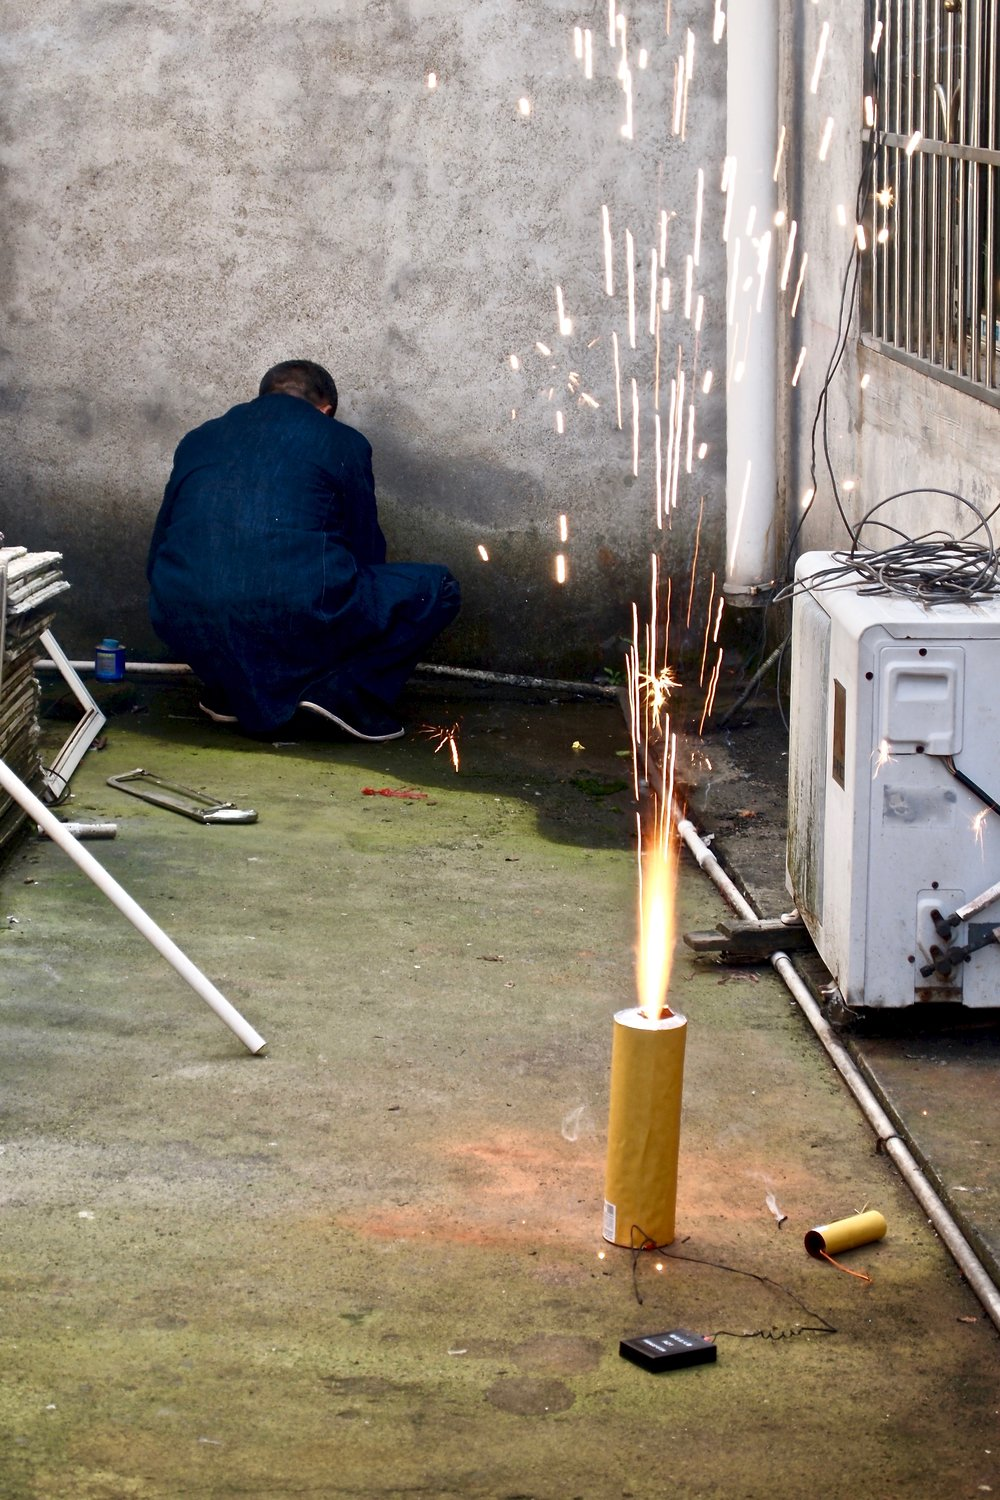 An employee testing fireworks at Dream Fireworks factory in Liuyang, China. Photo: (C) Remko Tanis